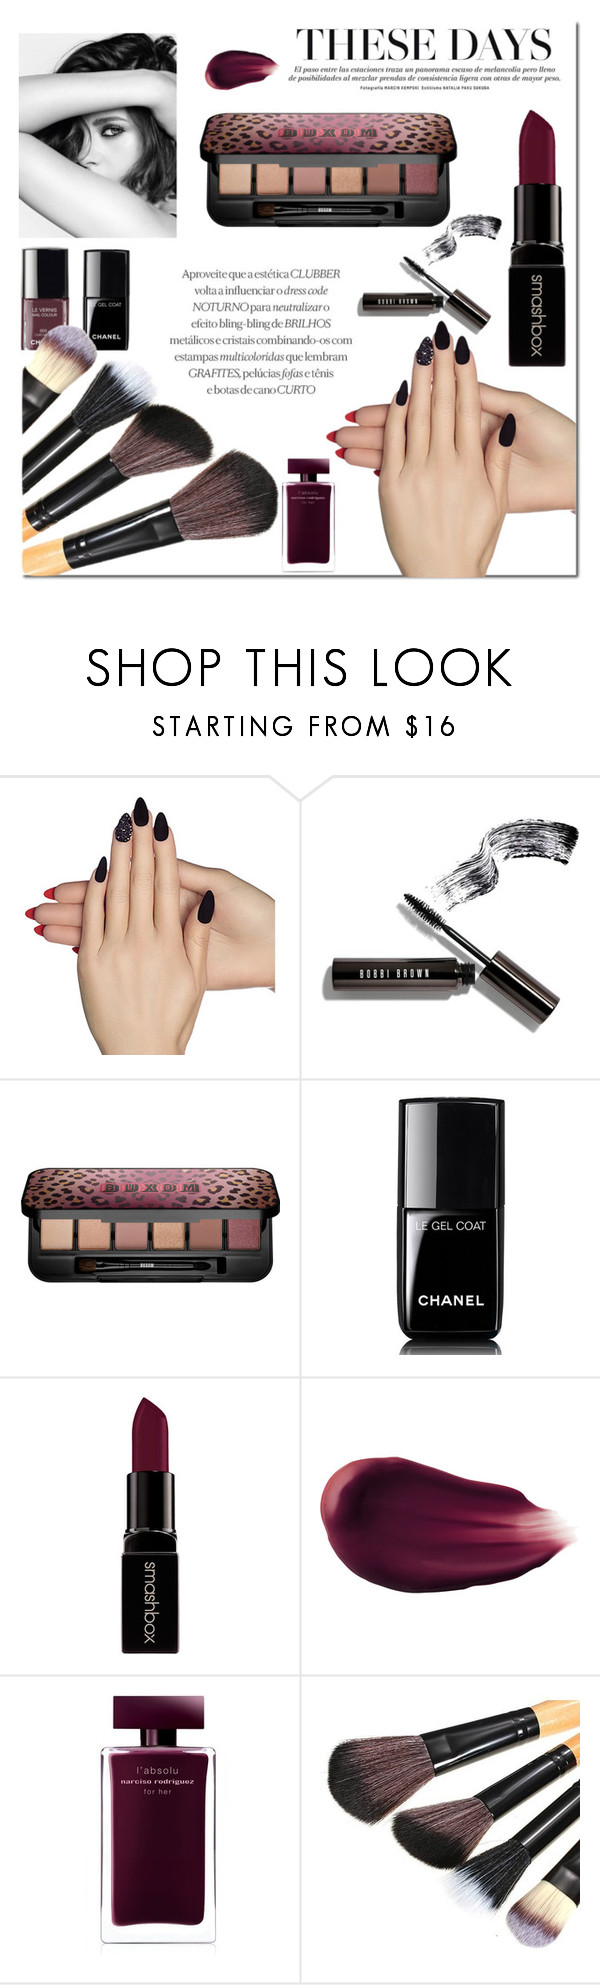 """..."" by rasaj ❤ liked on Polyvore featuring beauty, Static Nails, Chanel, Bobbi Brown Cosmetics, Buxom, Smashbox, Hourglass Cosmetics and Narciso Rodriguez"